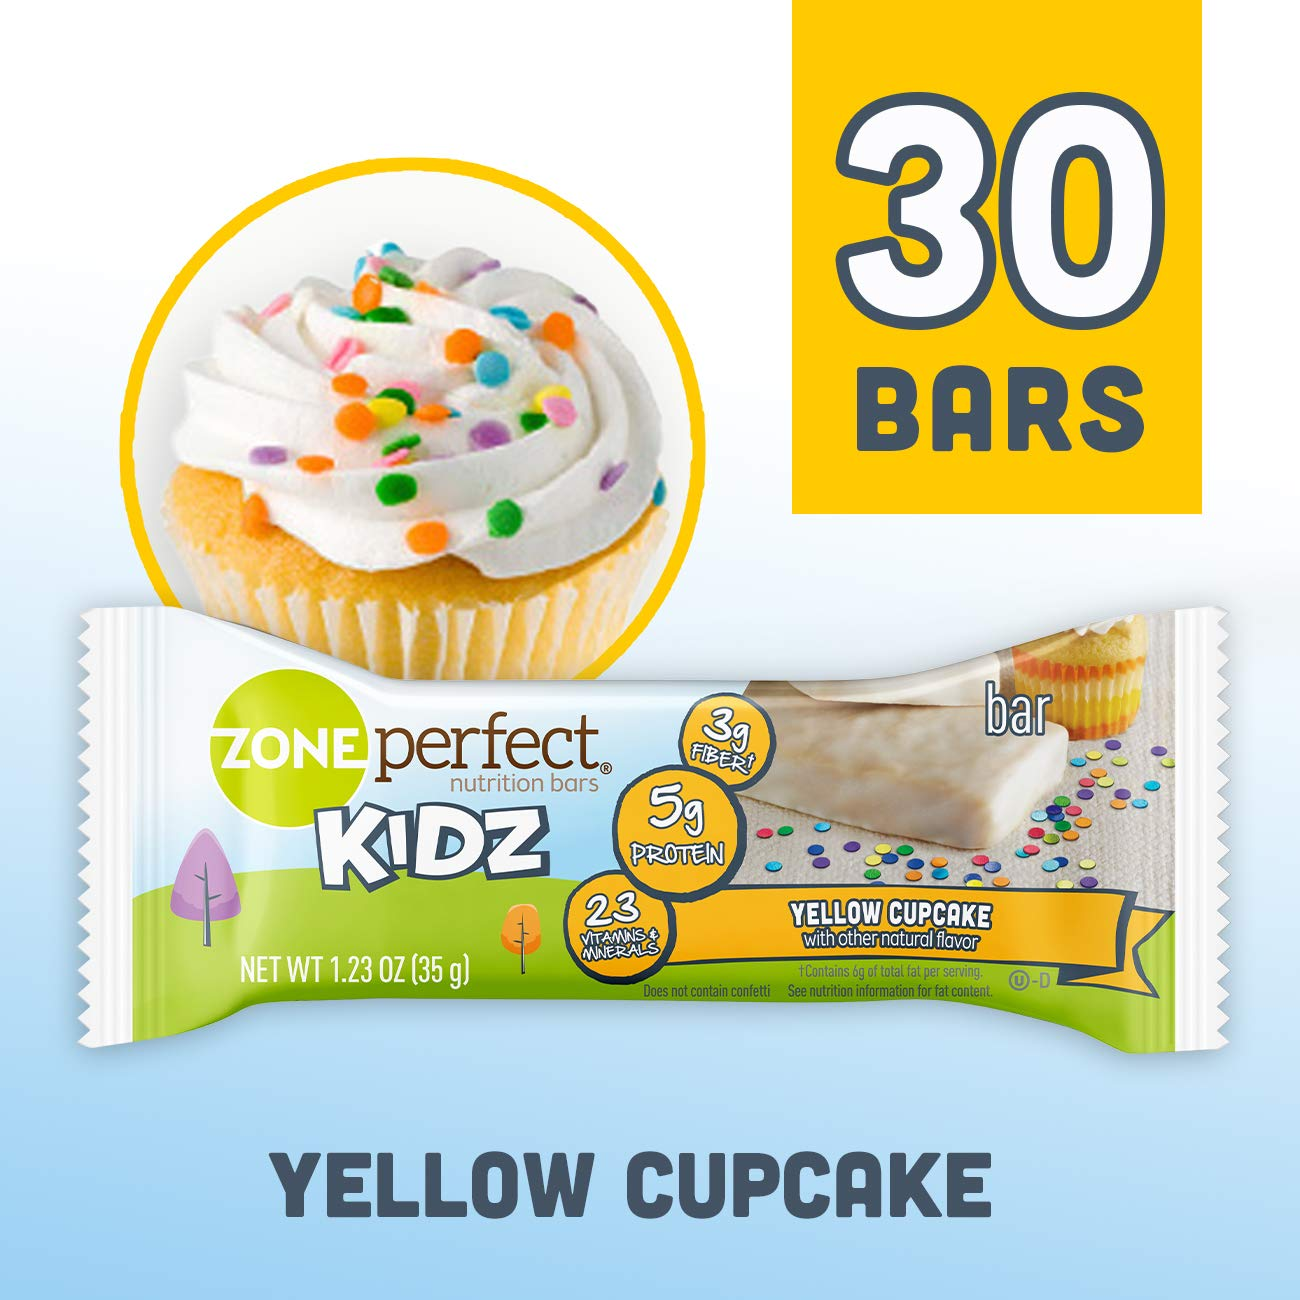 ZonePerfect Kidz Nutrition Bars, No Artificial Flavors or Colors, Yellow Cupcake